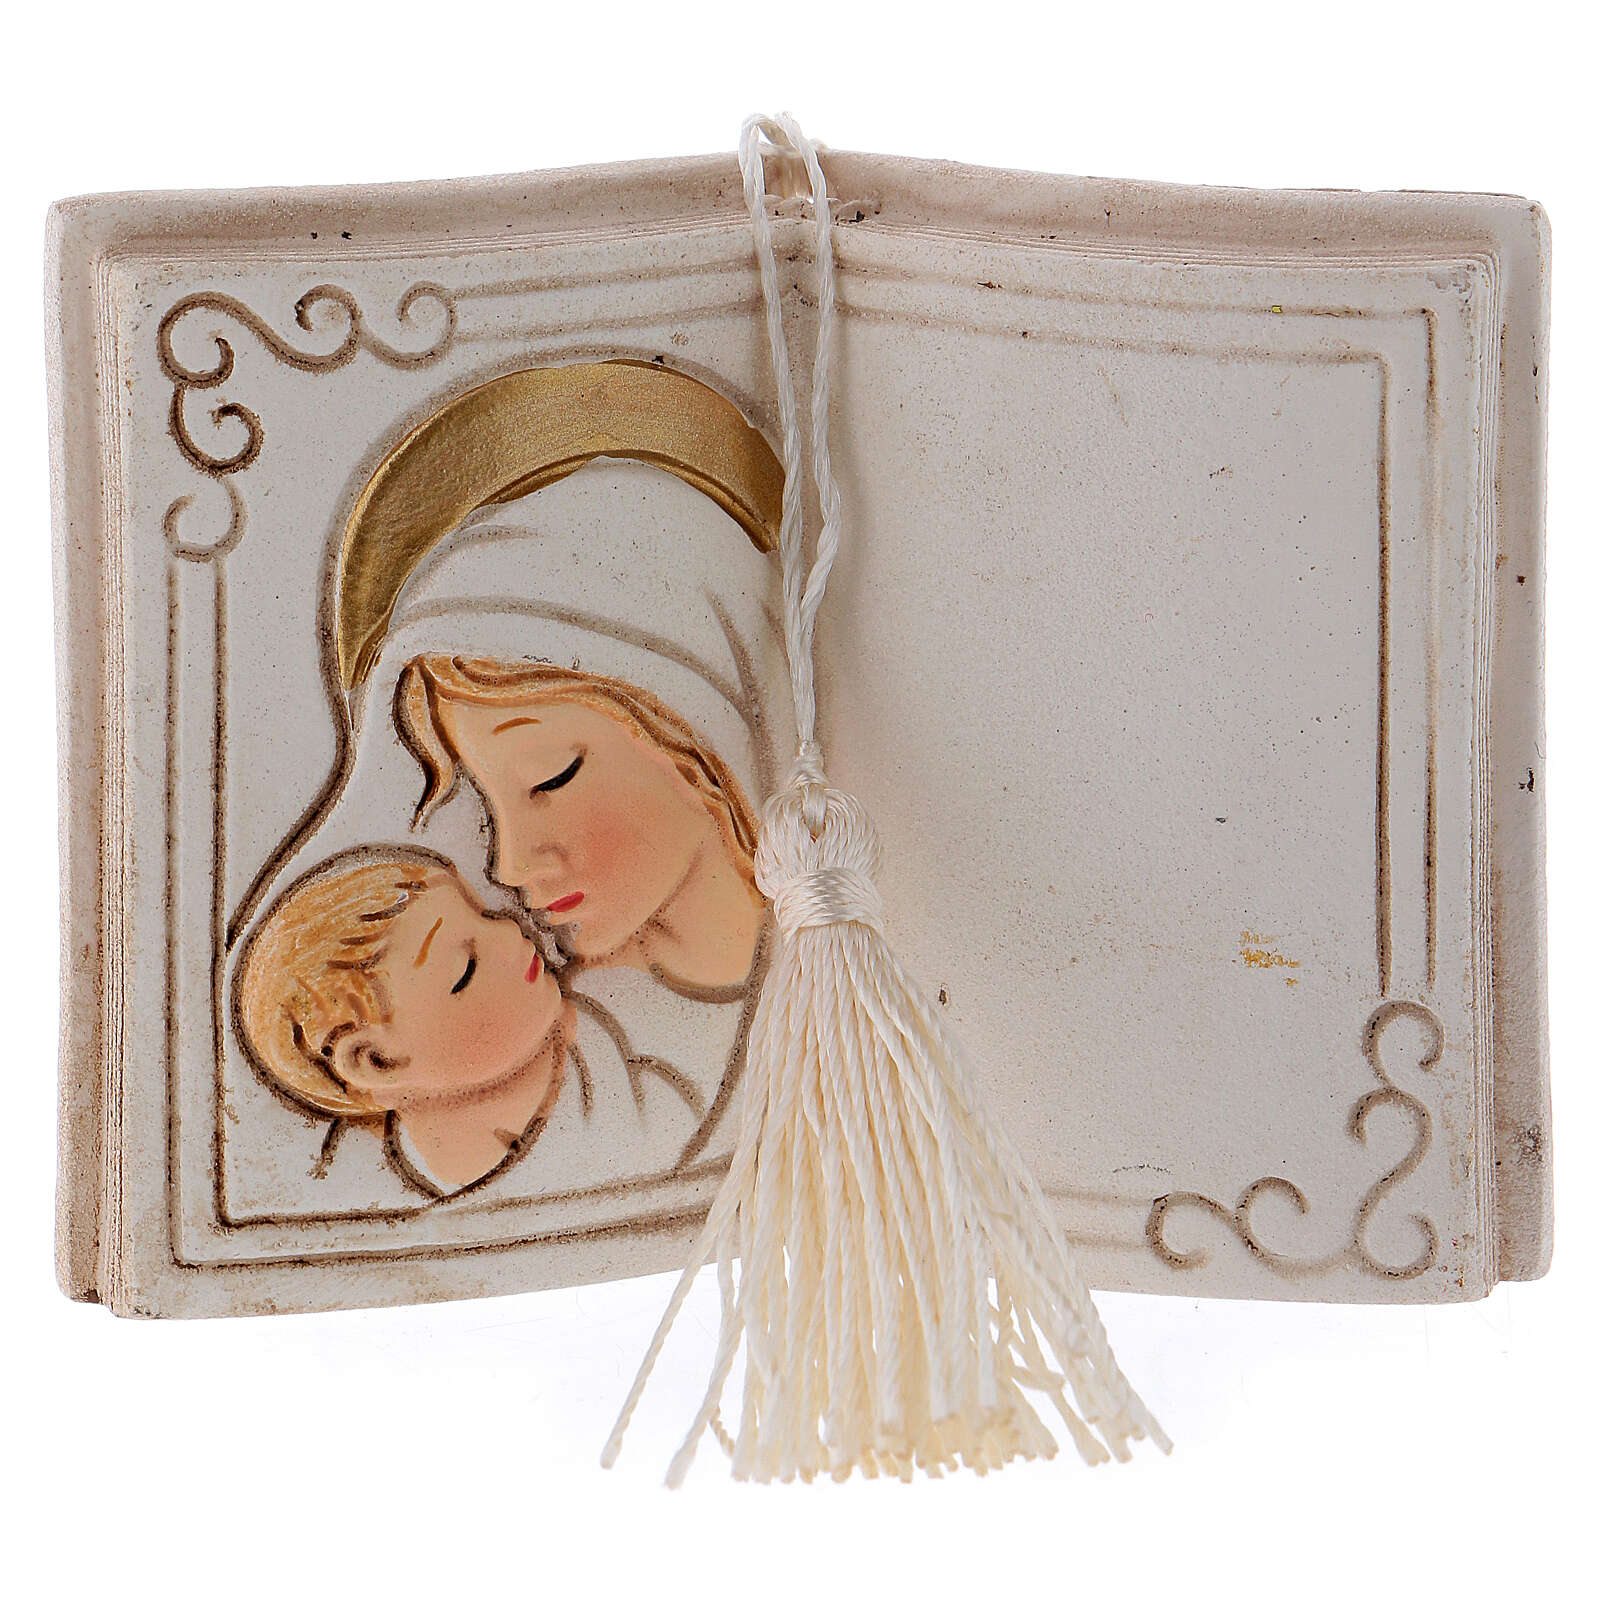 Book shaped ornament Virgin Mary with Child 3 in 3